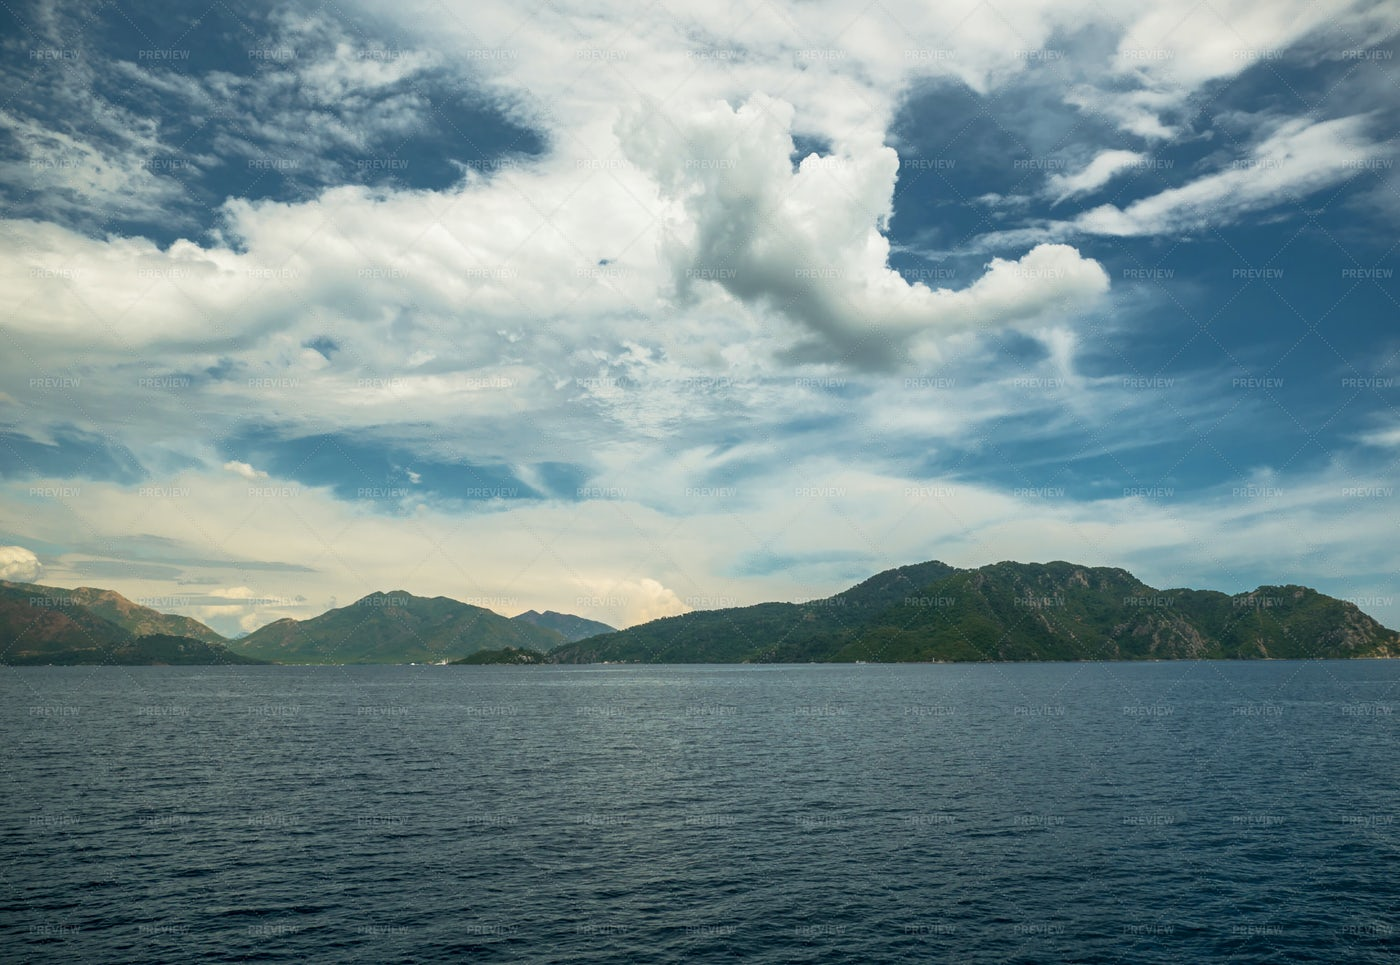 Ocean, Mountains And Clouds: Stock Photos